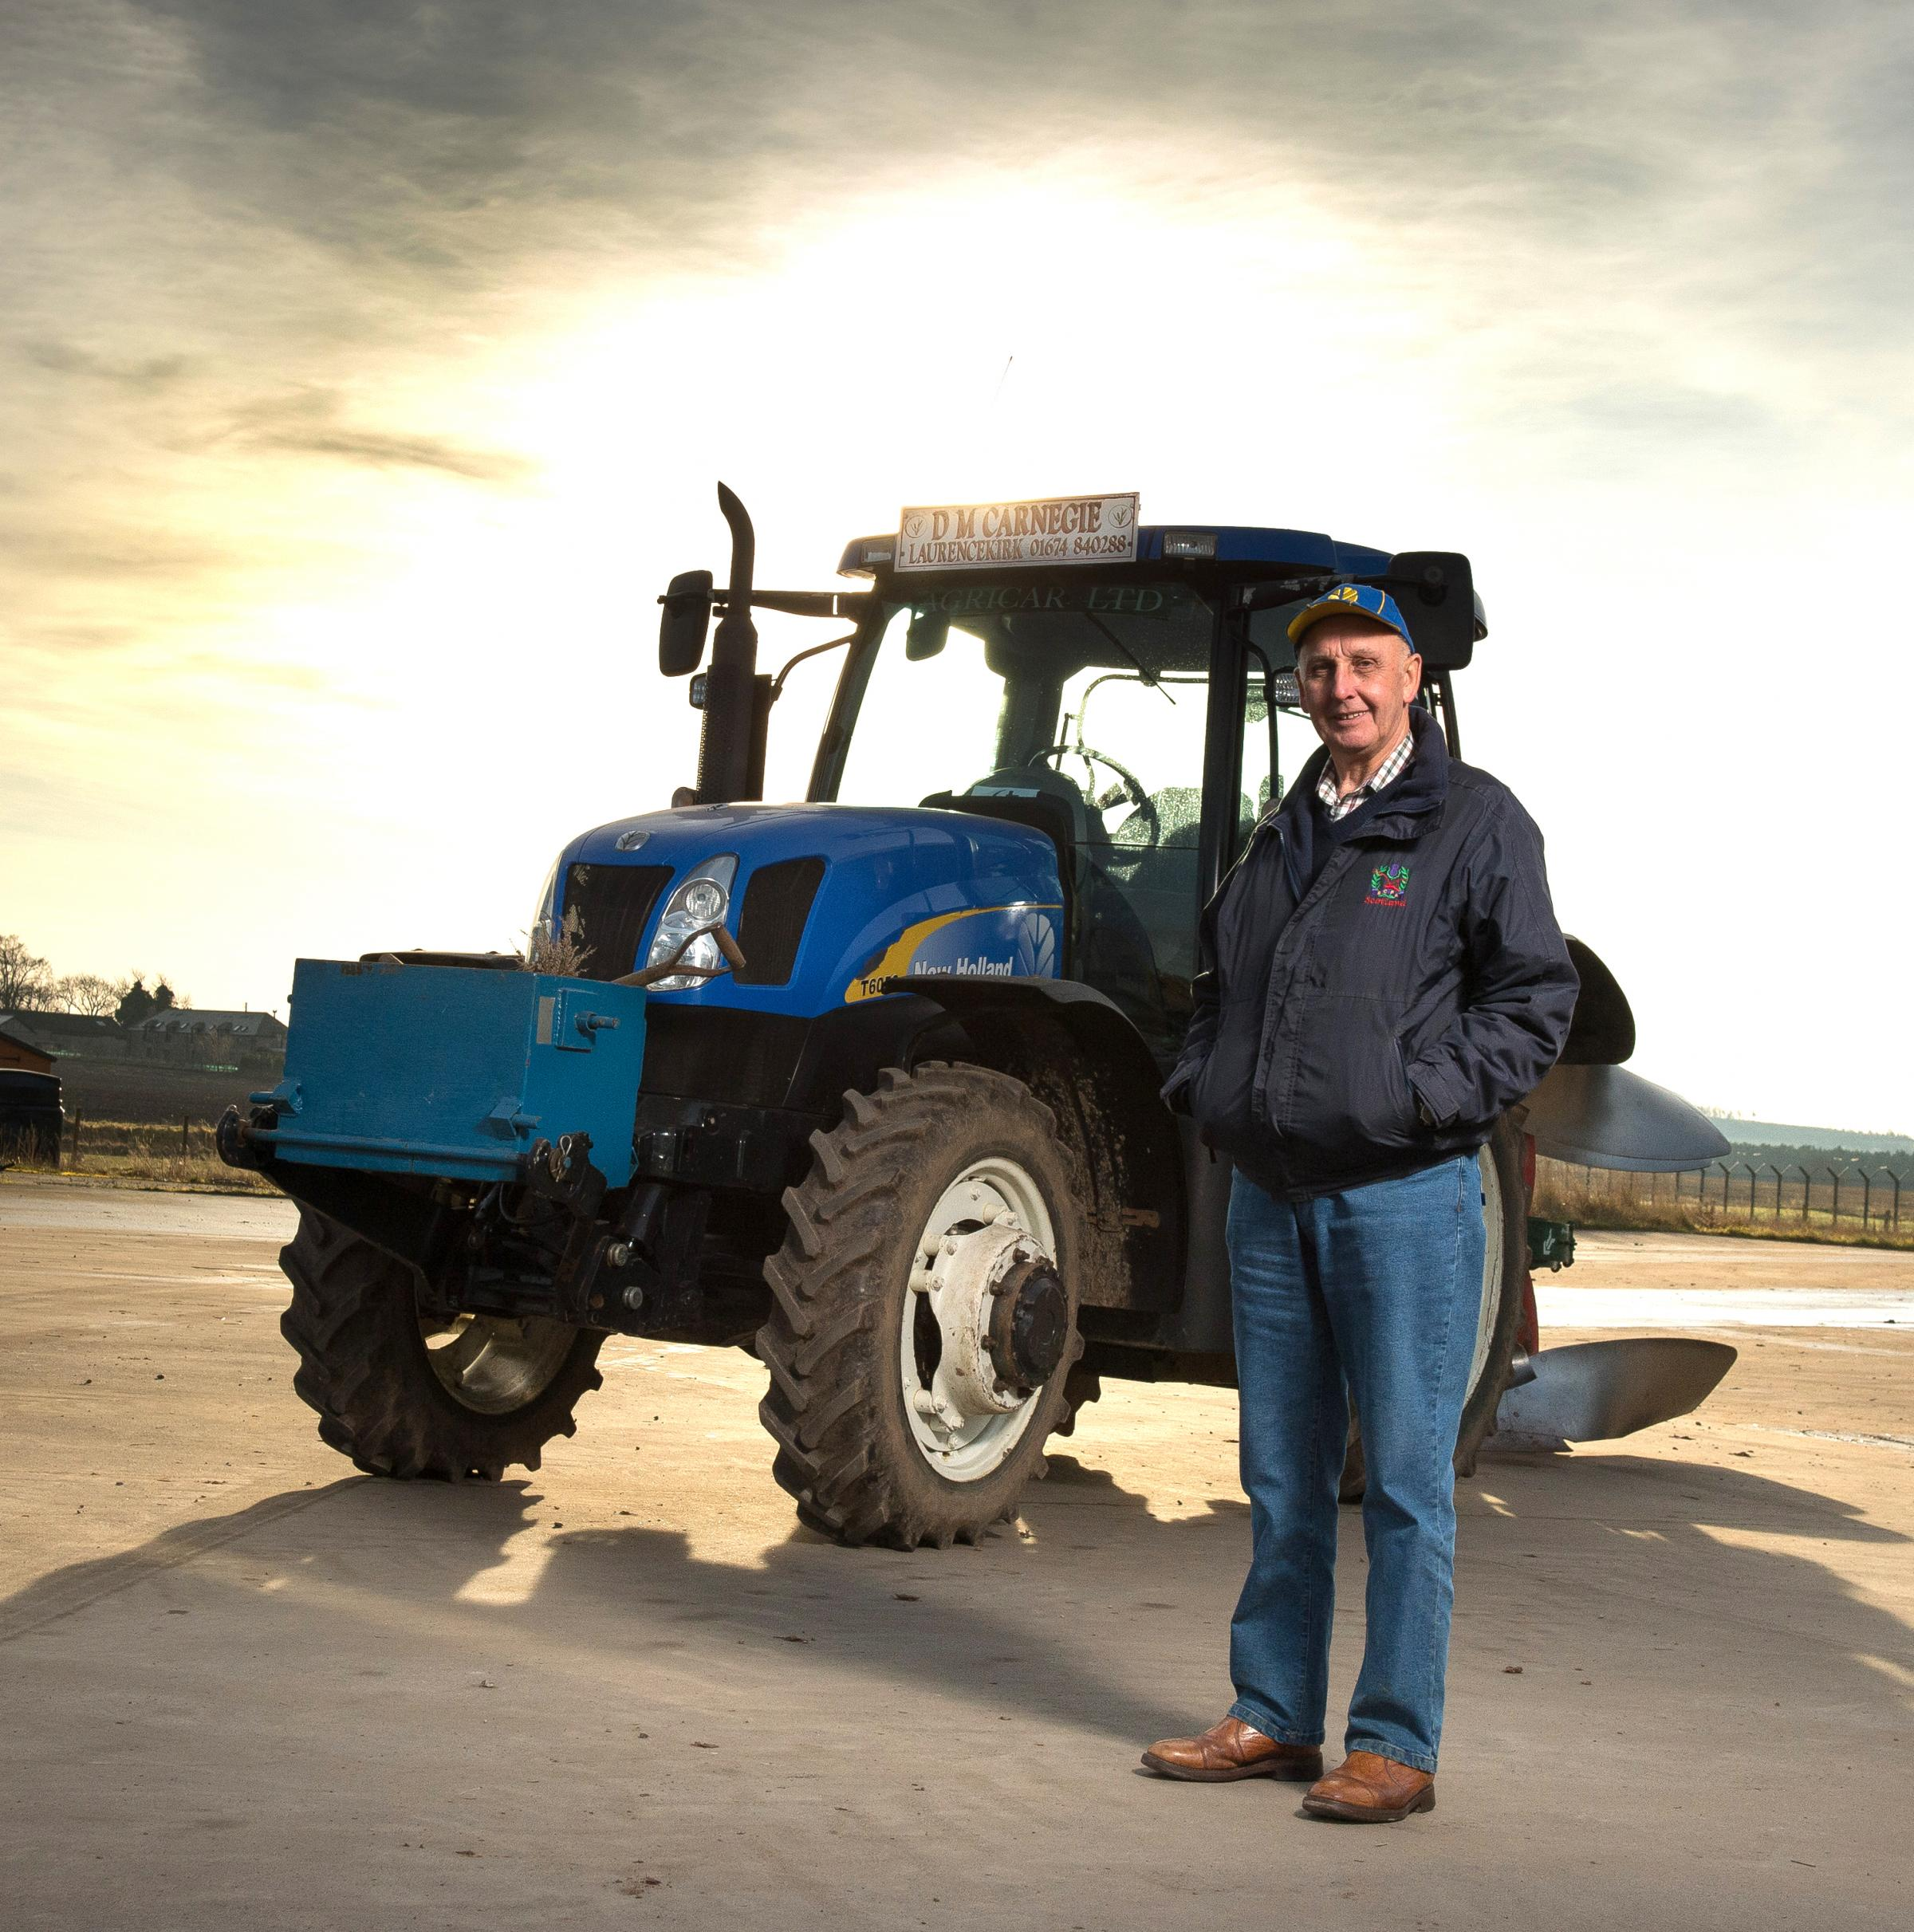 David Carnegie pictured at Steelstrath with his New Holland 6050 and two-furrow reversible Kverneland plough which has led him to victory a number of times at the Scottish Ploughing Championships